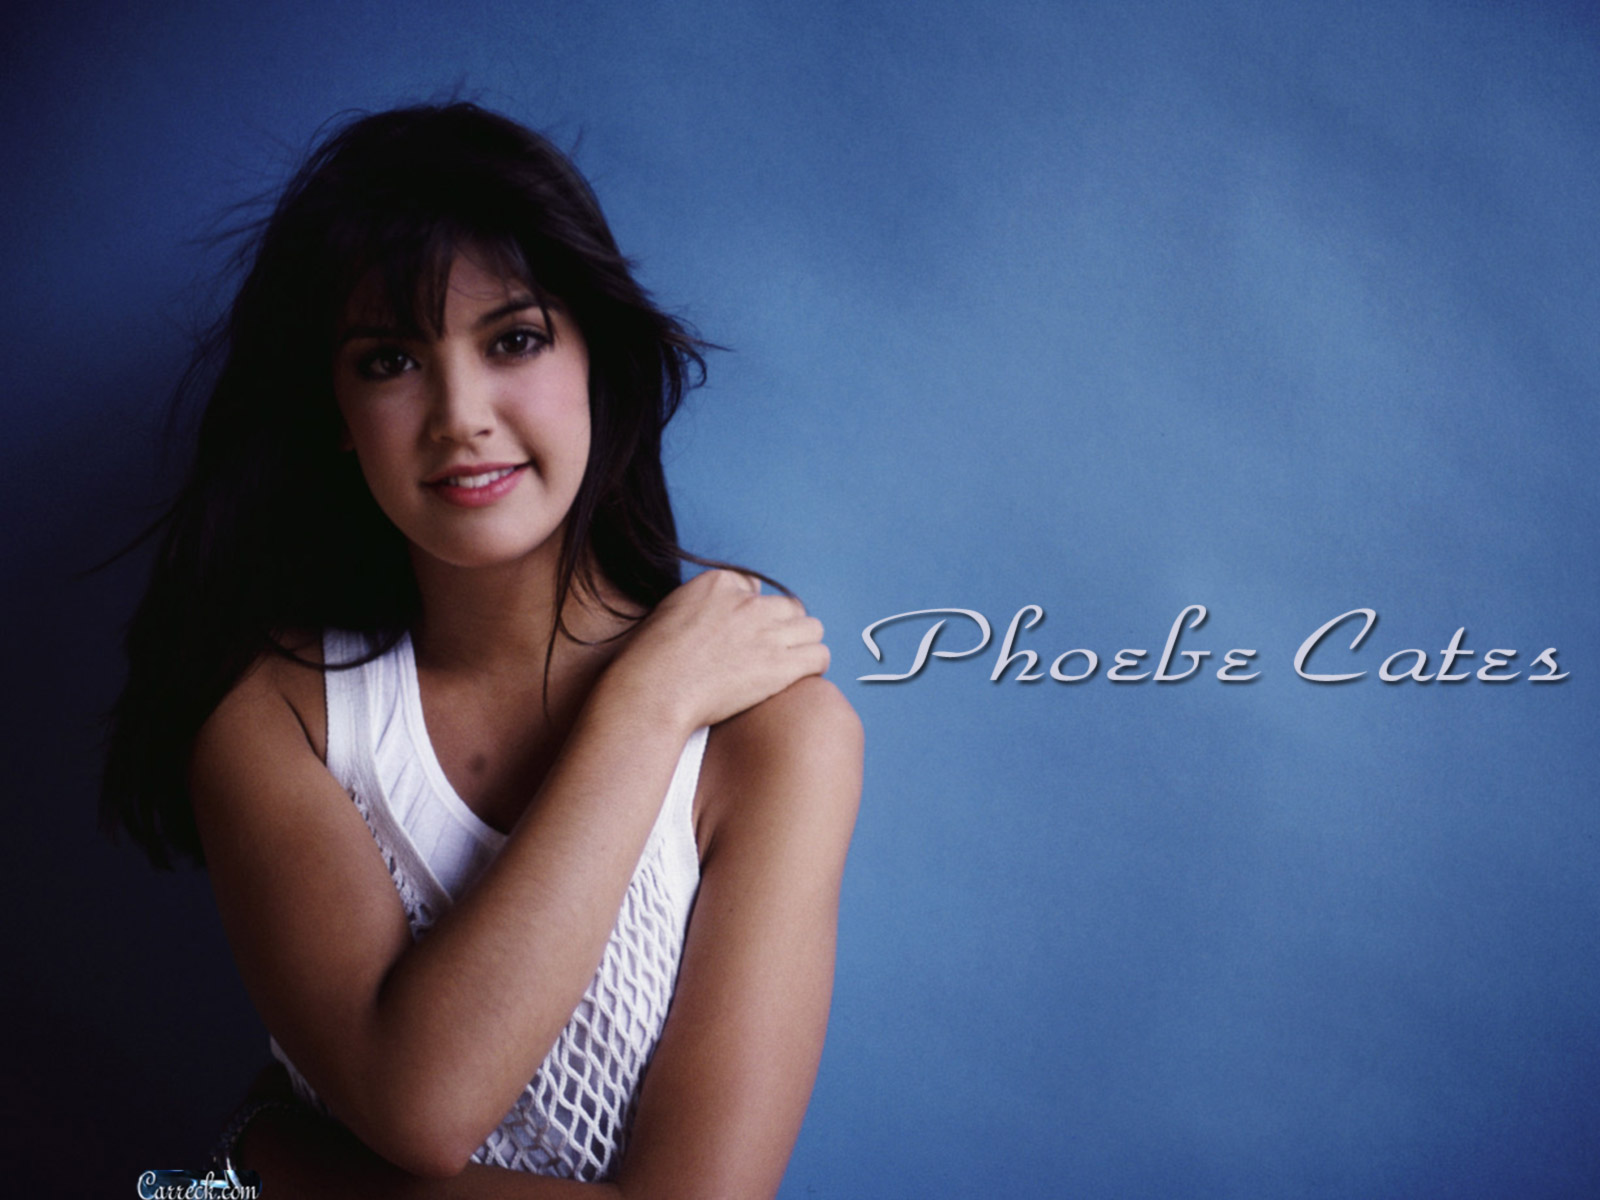 1600x1200 - Phoebe Cates Wallpapers 24